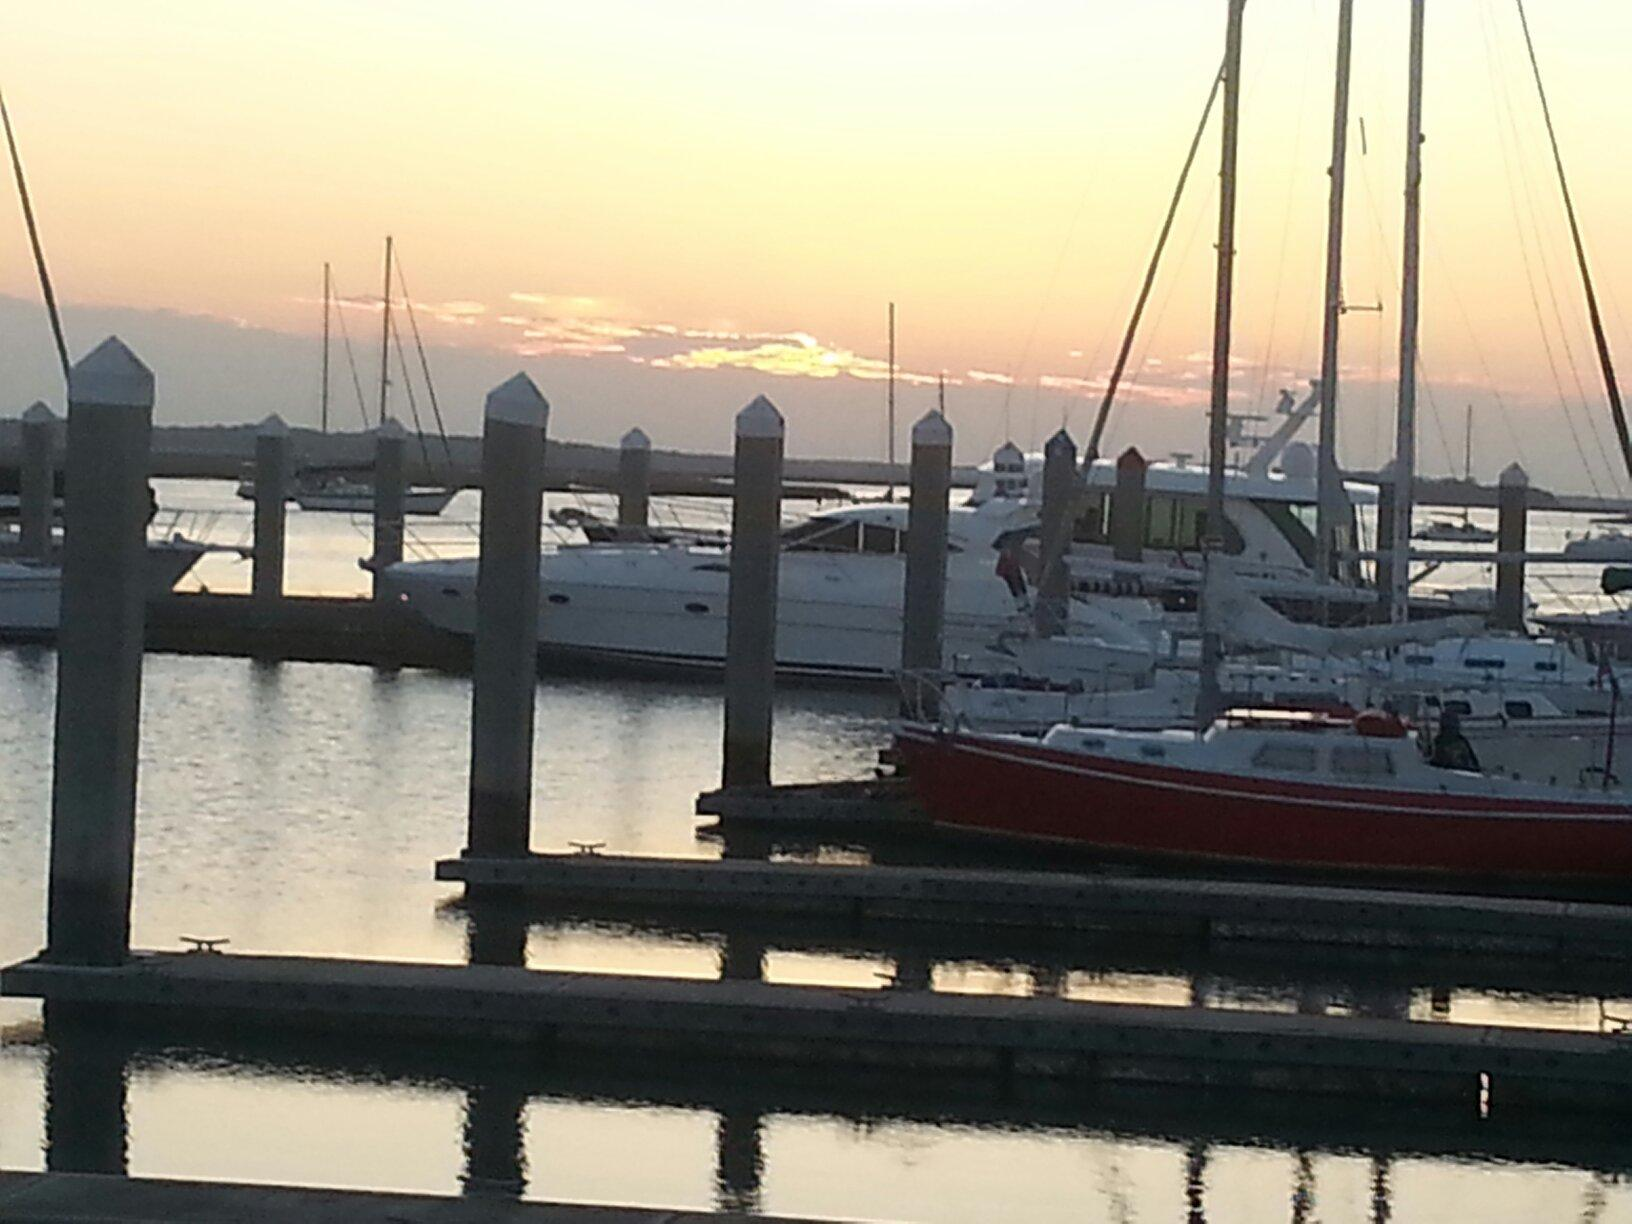 The harbor at Amelia Island is fantastic.  It is steps away from dining, shopping, galleries and